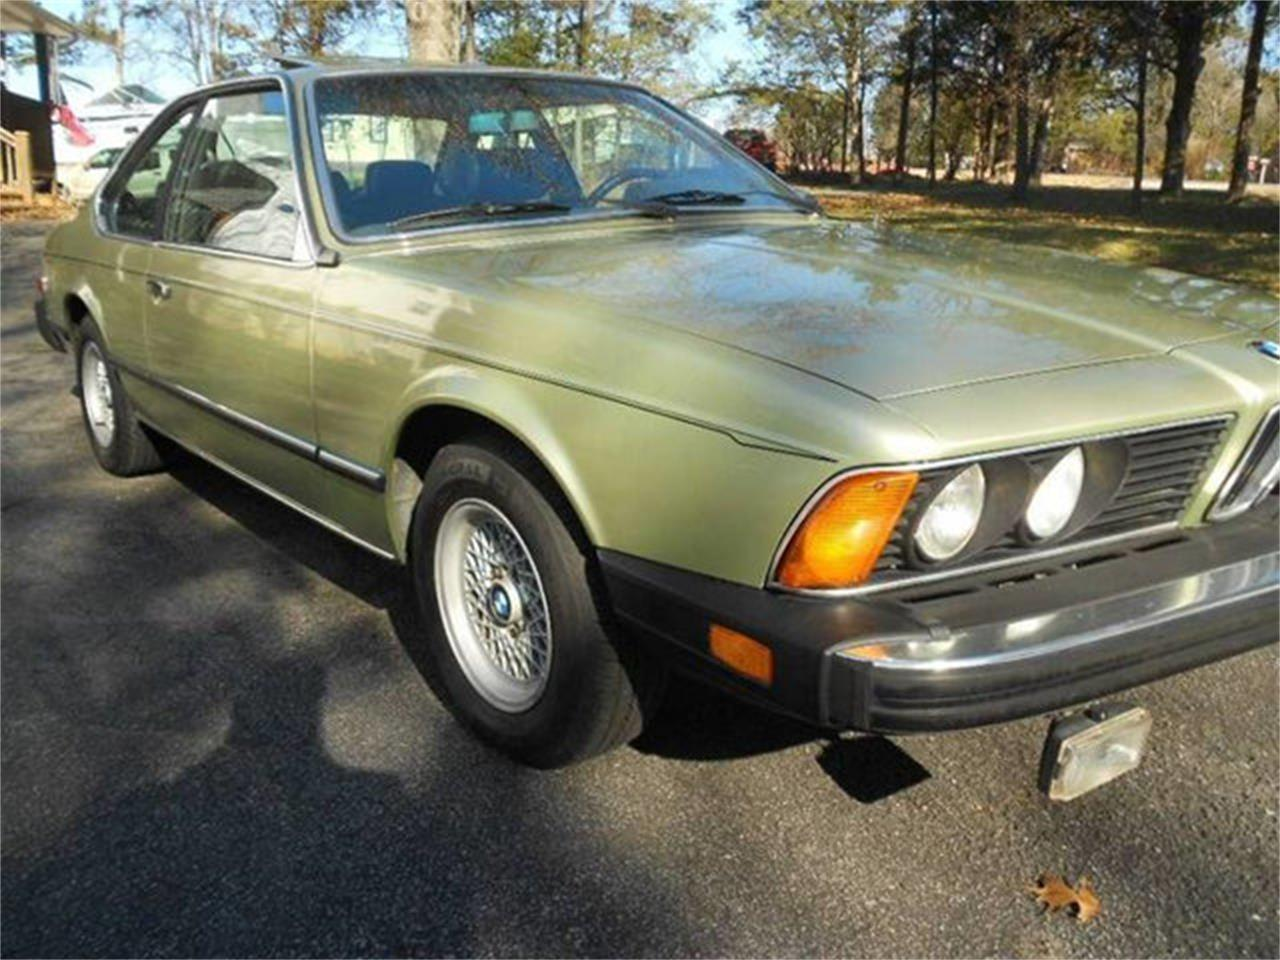 for sale 1977 bmw 6 series in long island, new york cars - ronkonkoma, ny at geebo